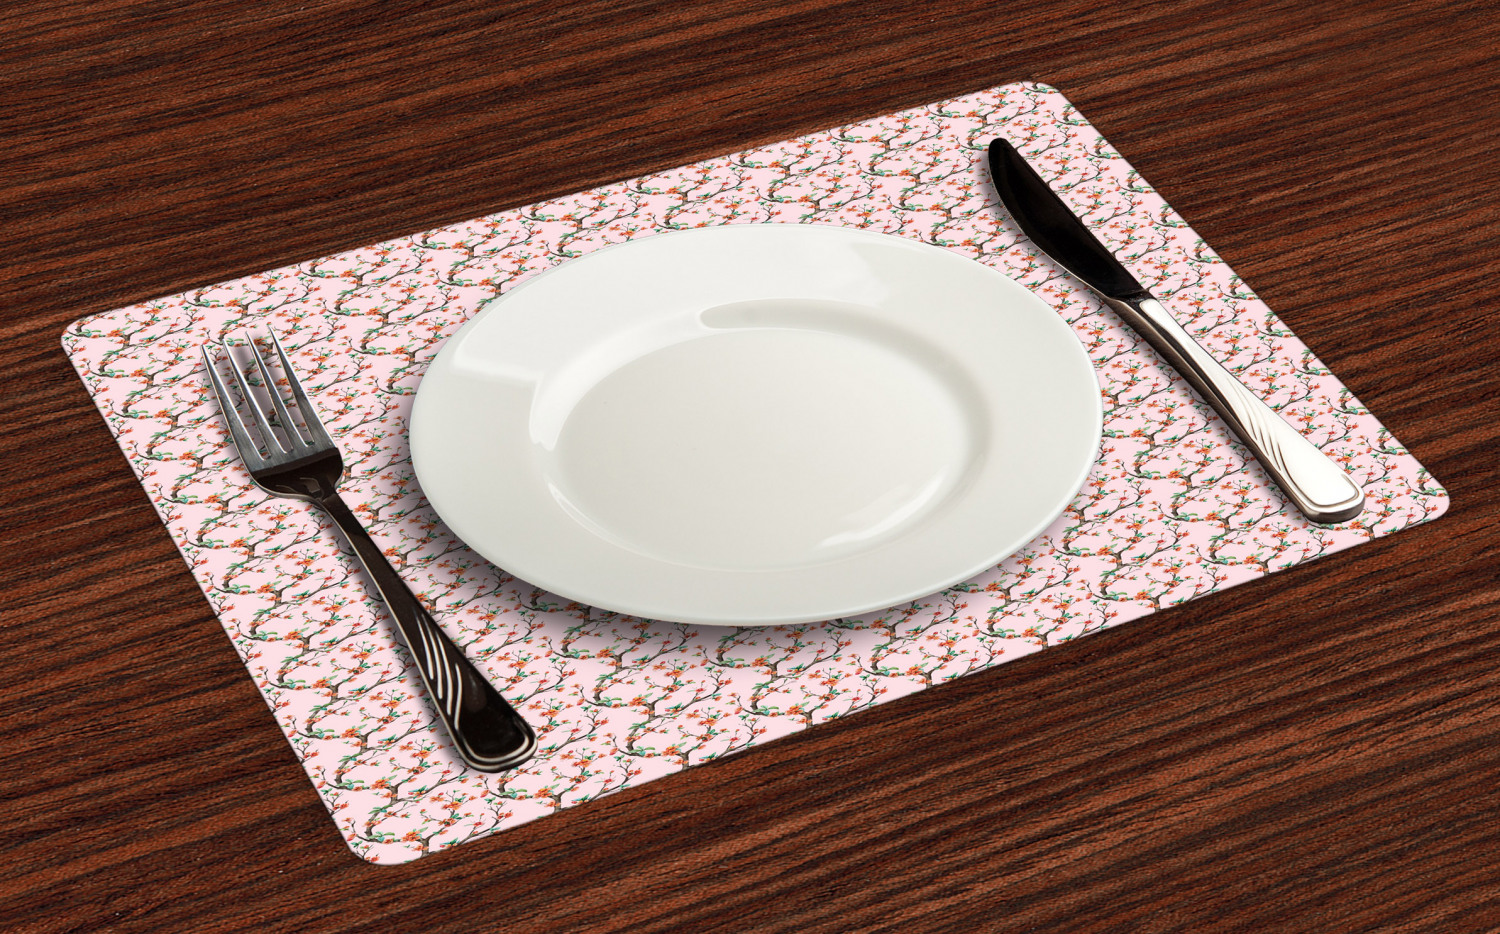 Ambesonne-Flower-Pattern-Placemat-Set-of-4-Fabric-Place-Mats-for-Table-Decor thumbnail 205